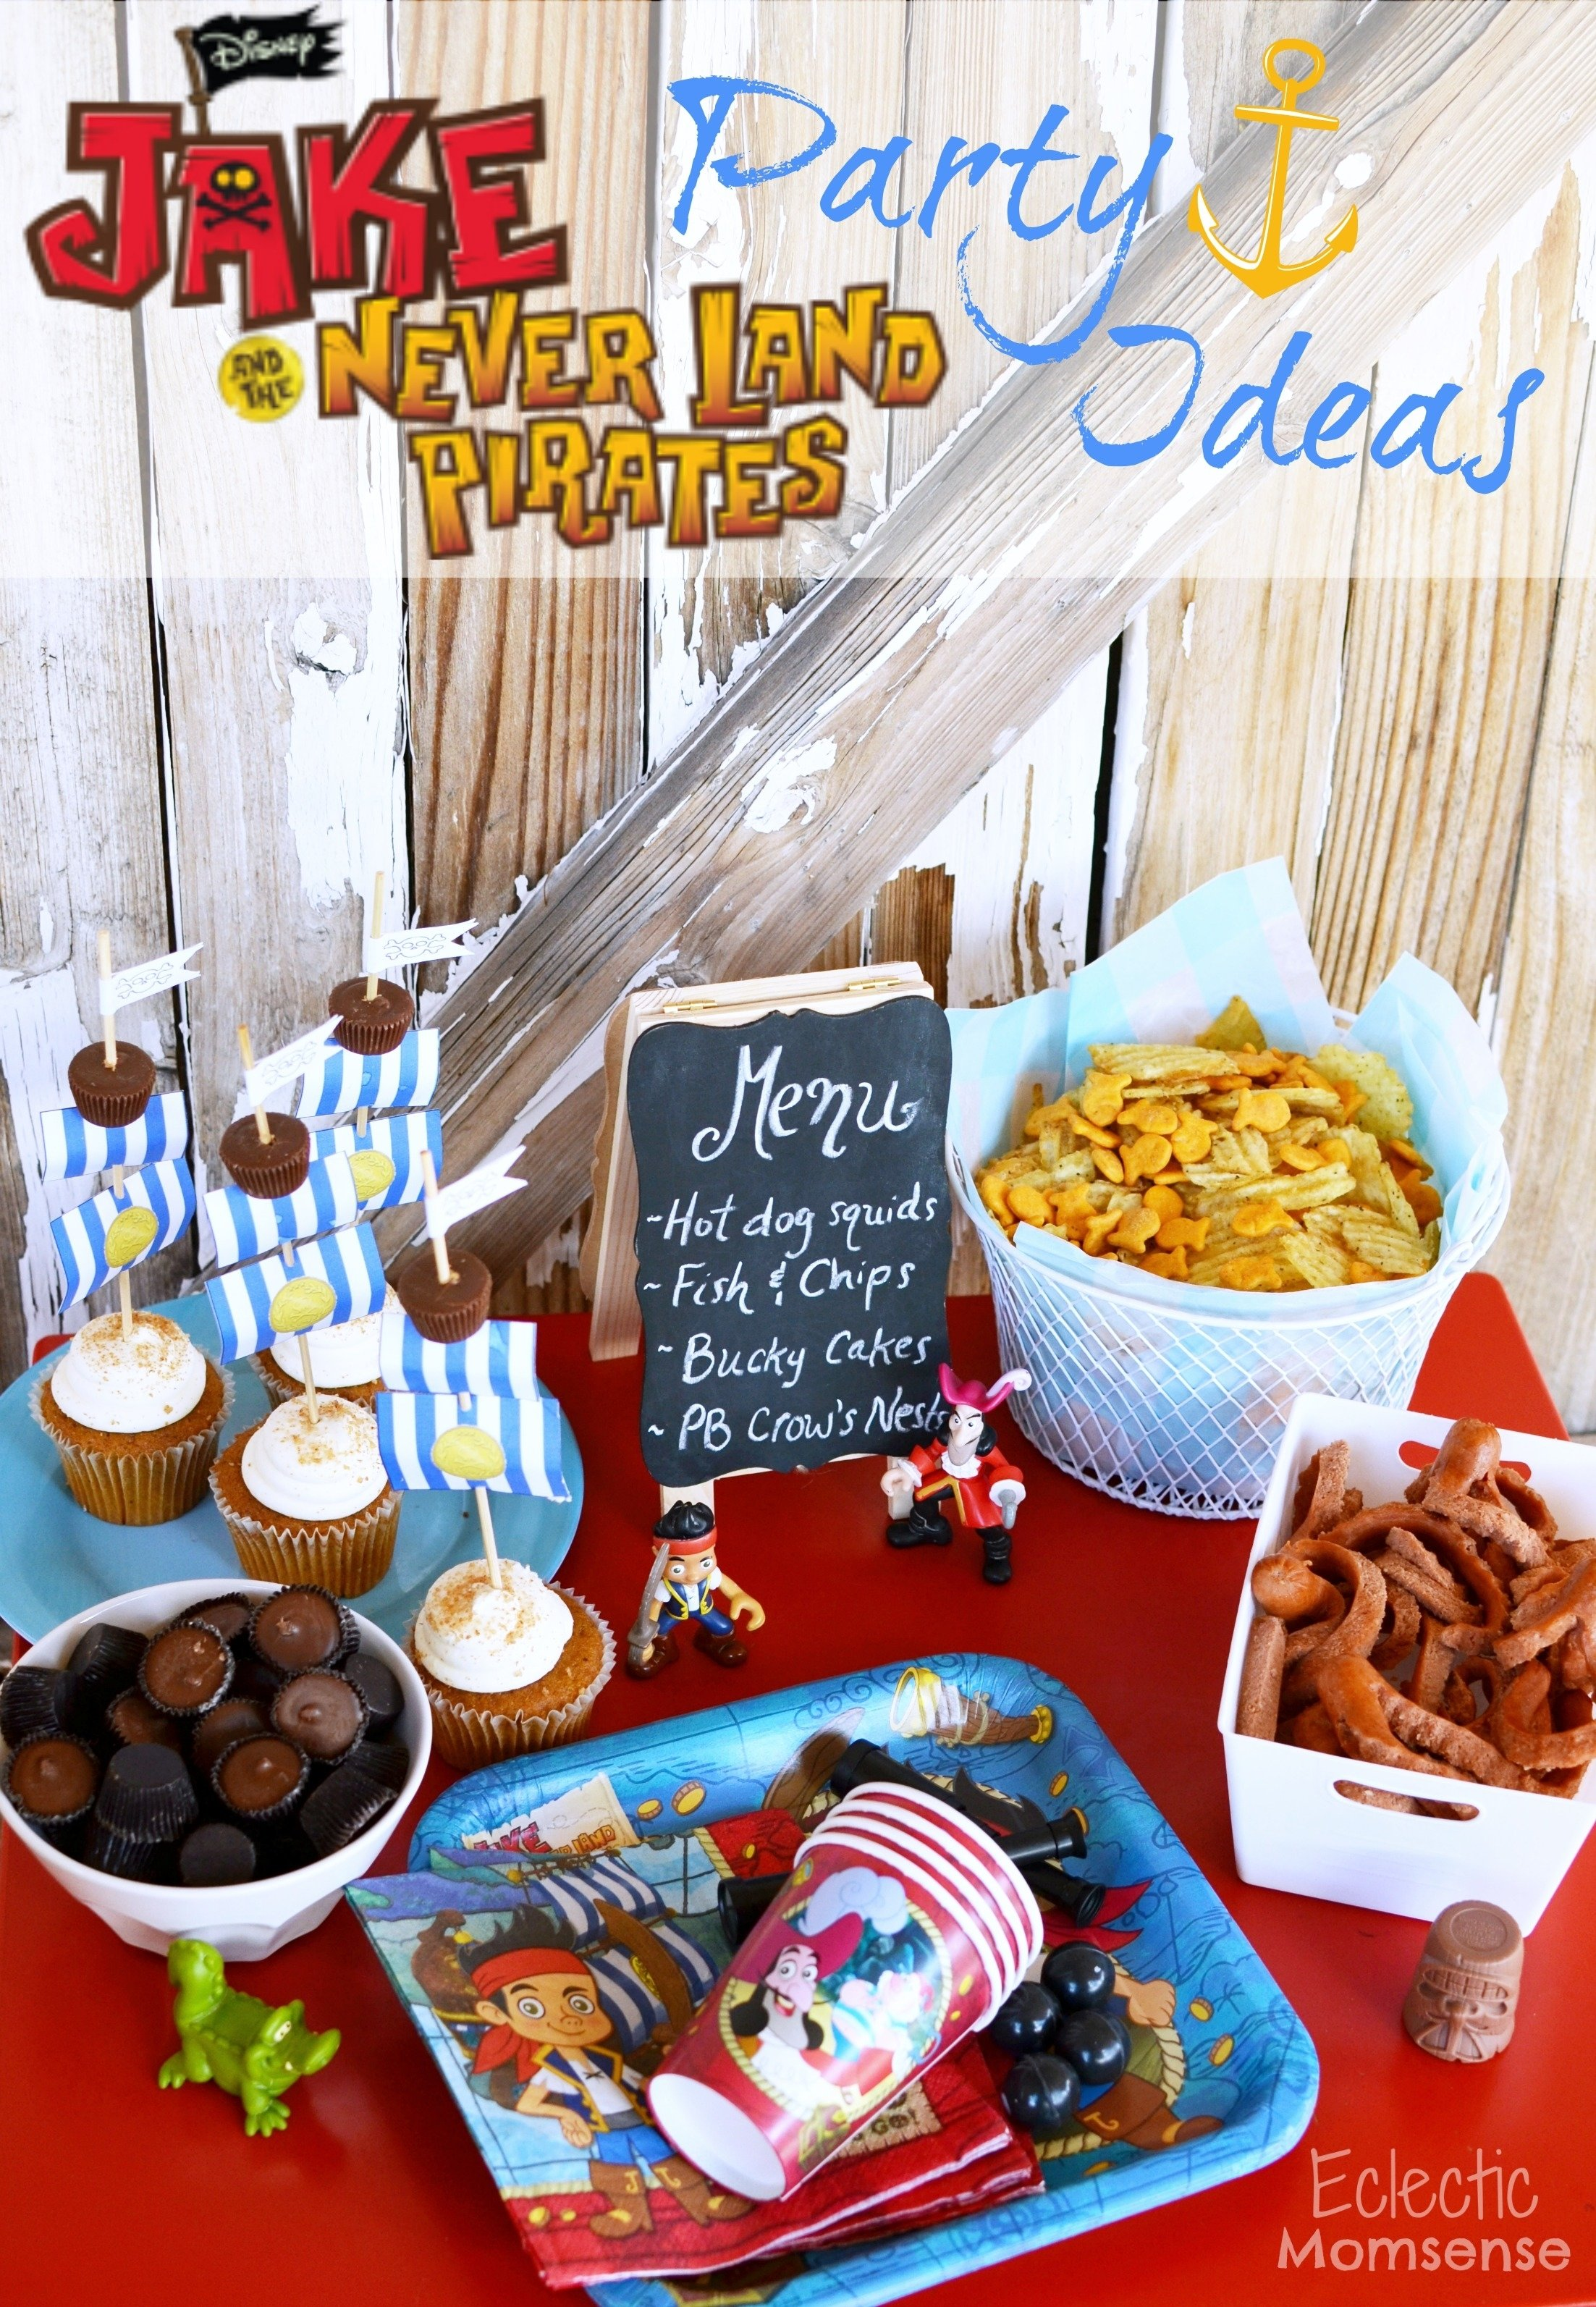 10 Unique Ideas For Jake And The Neverland Pirates Party easy jake and the neverland pirates party ideas eclectic momsense 8 2021